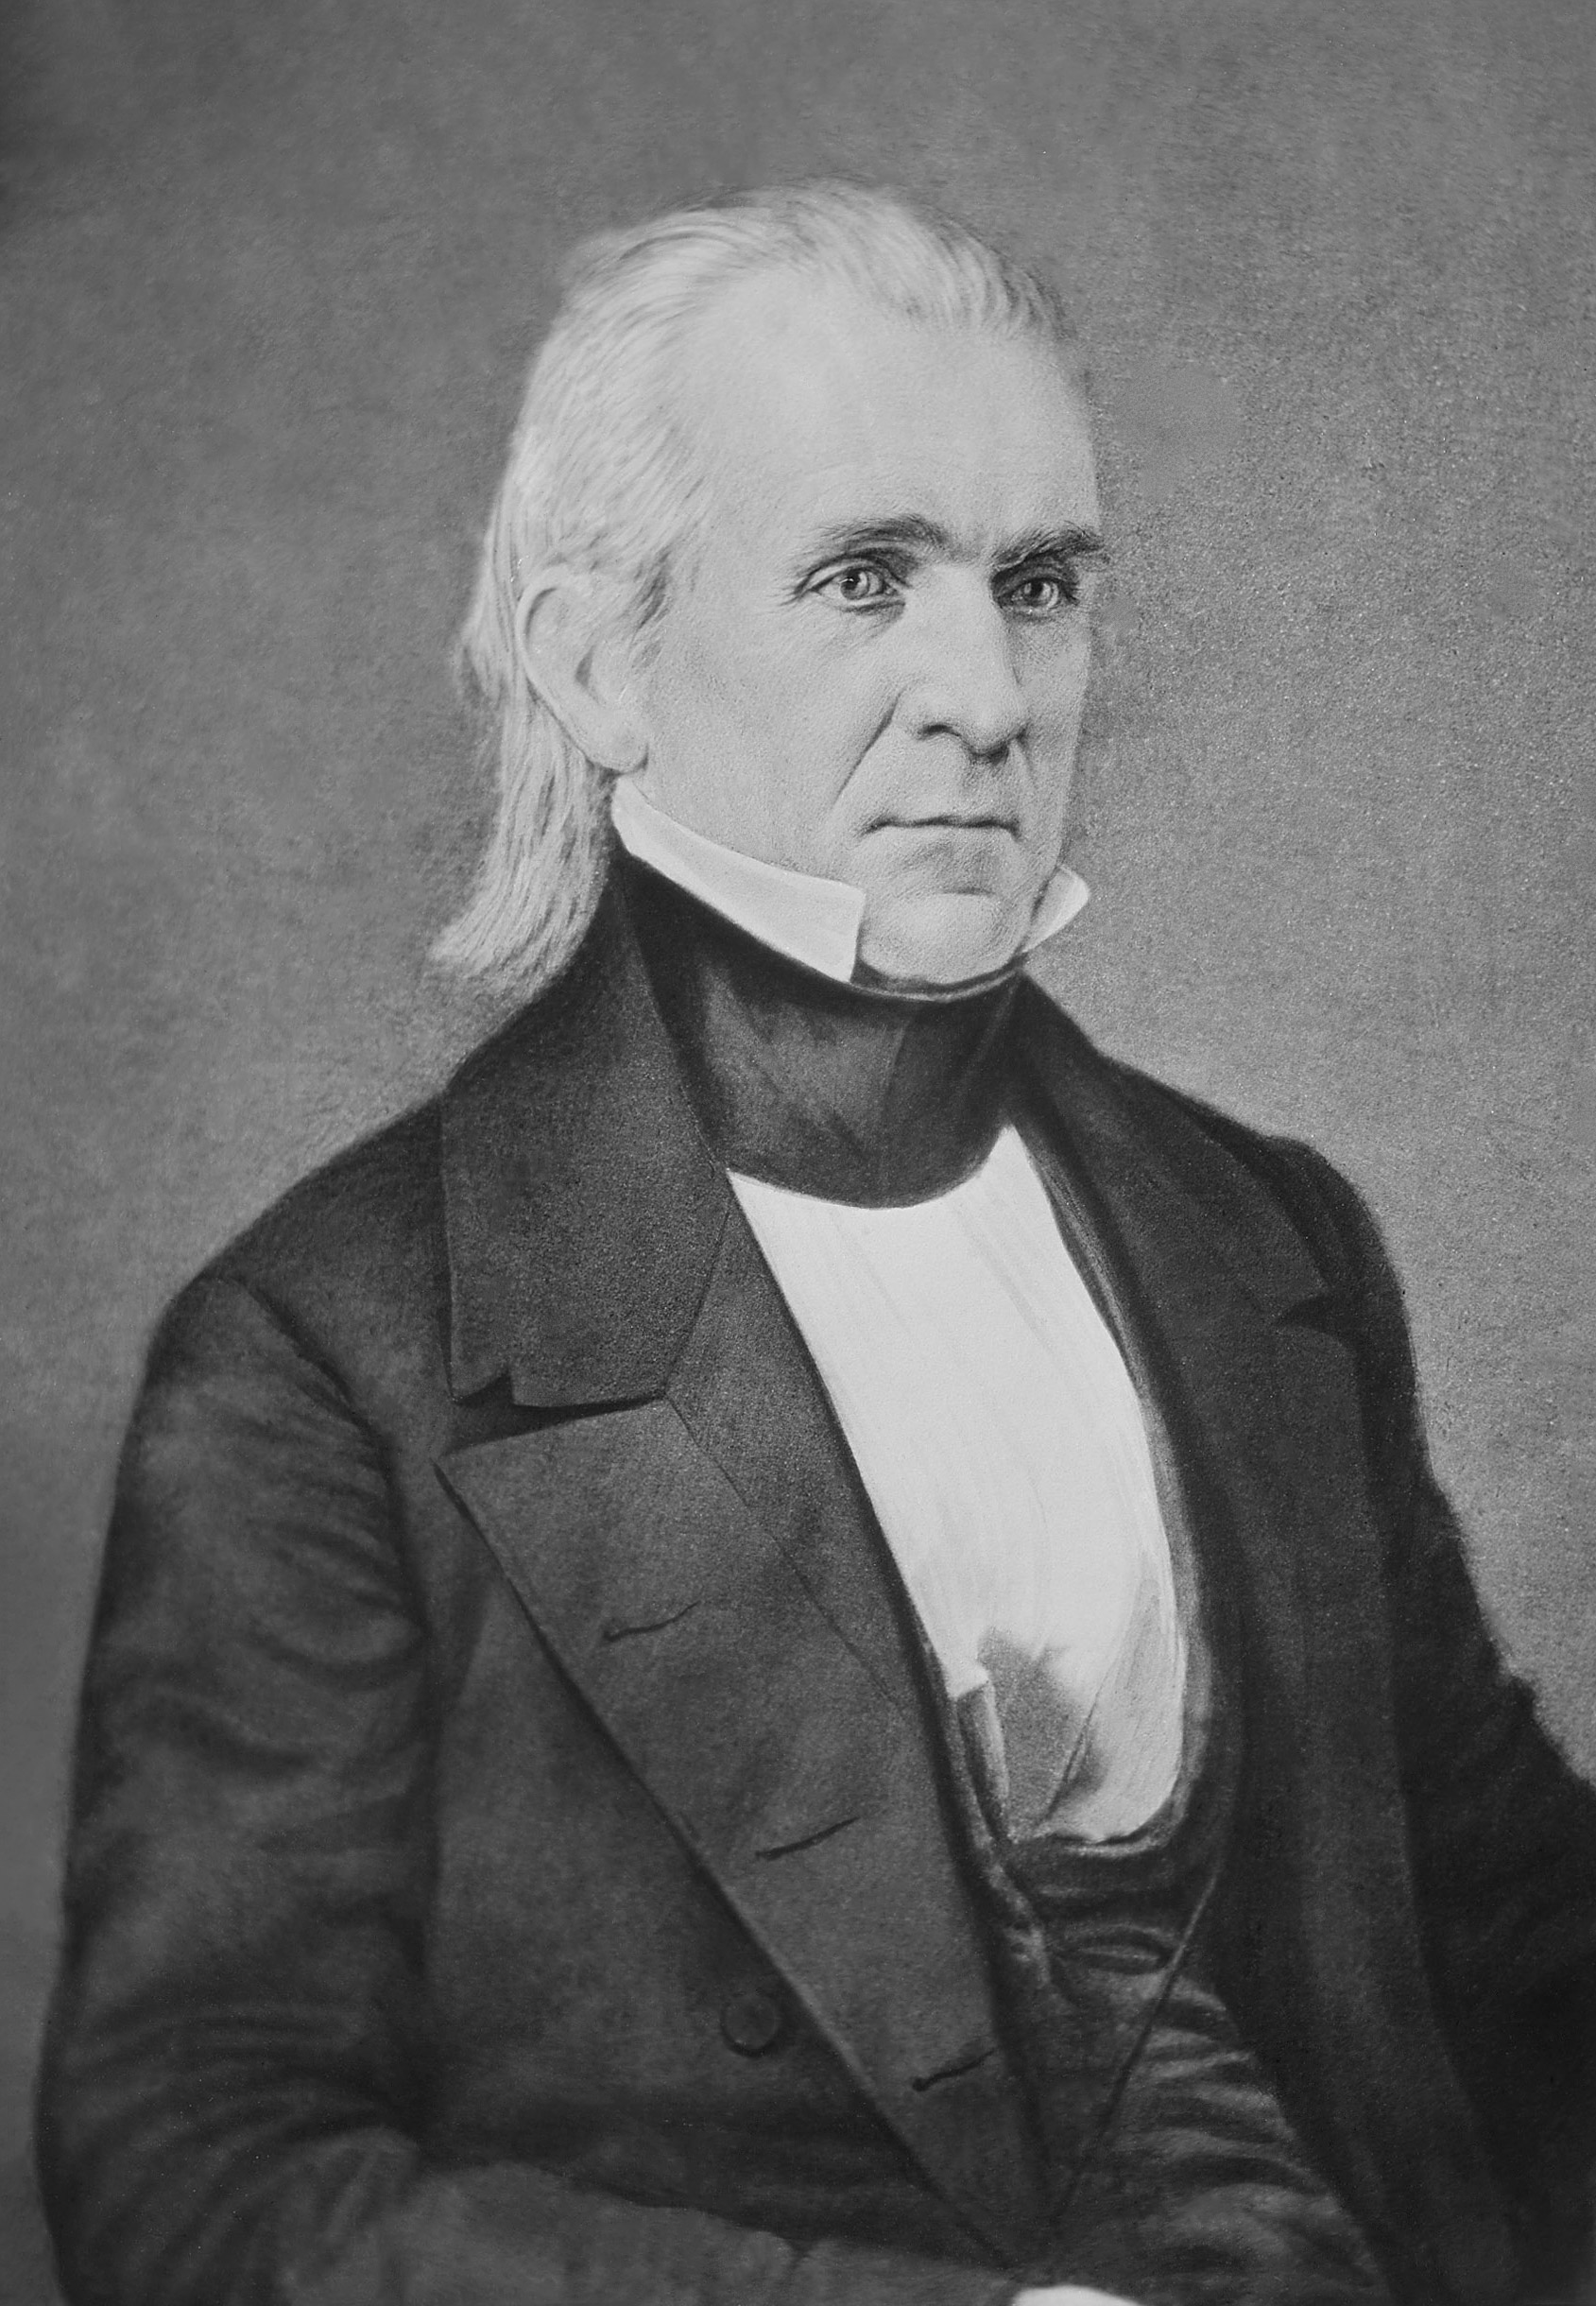 James Knox Polk, the 11th President of the United States, in the late 1840s.